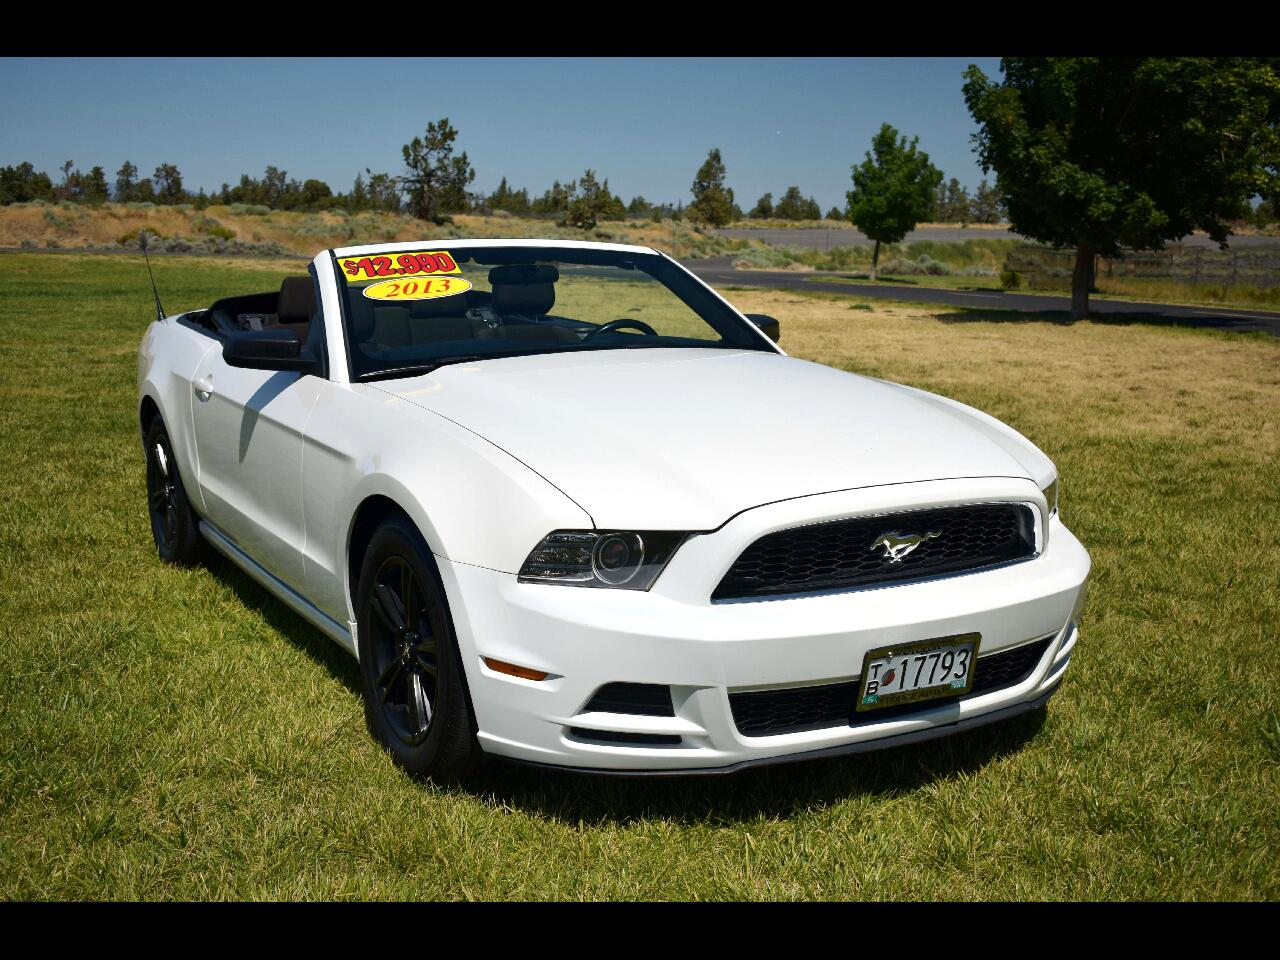 2013 Ford Mustang 2dr Convertible V6